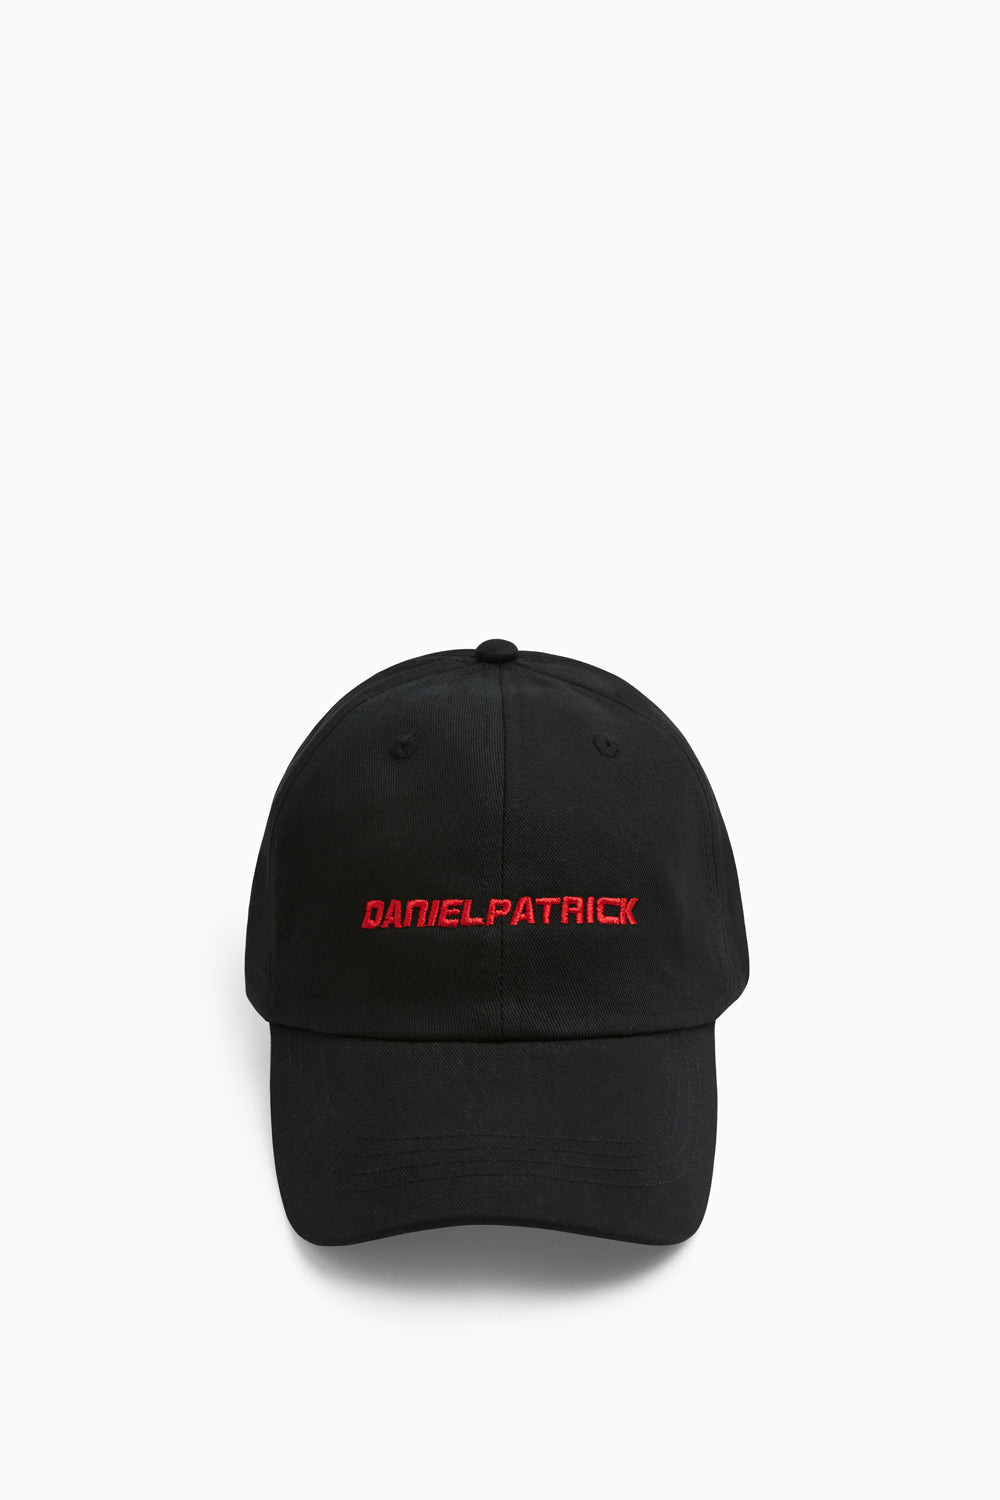 DP sport cap in black/red by daniel patrick